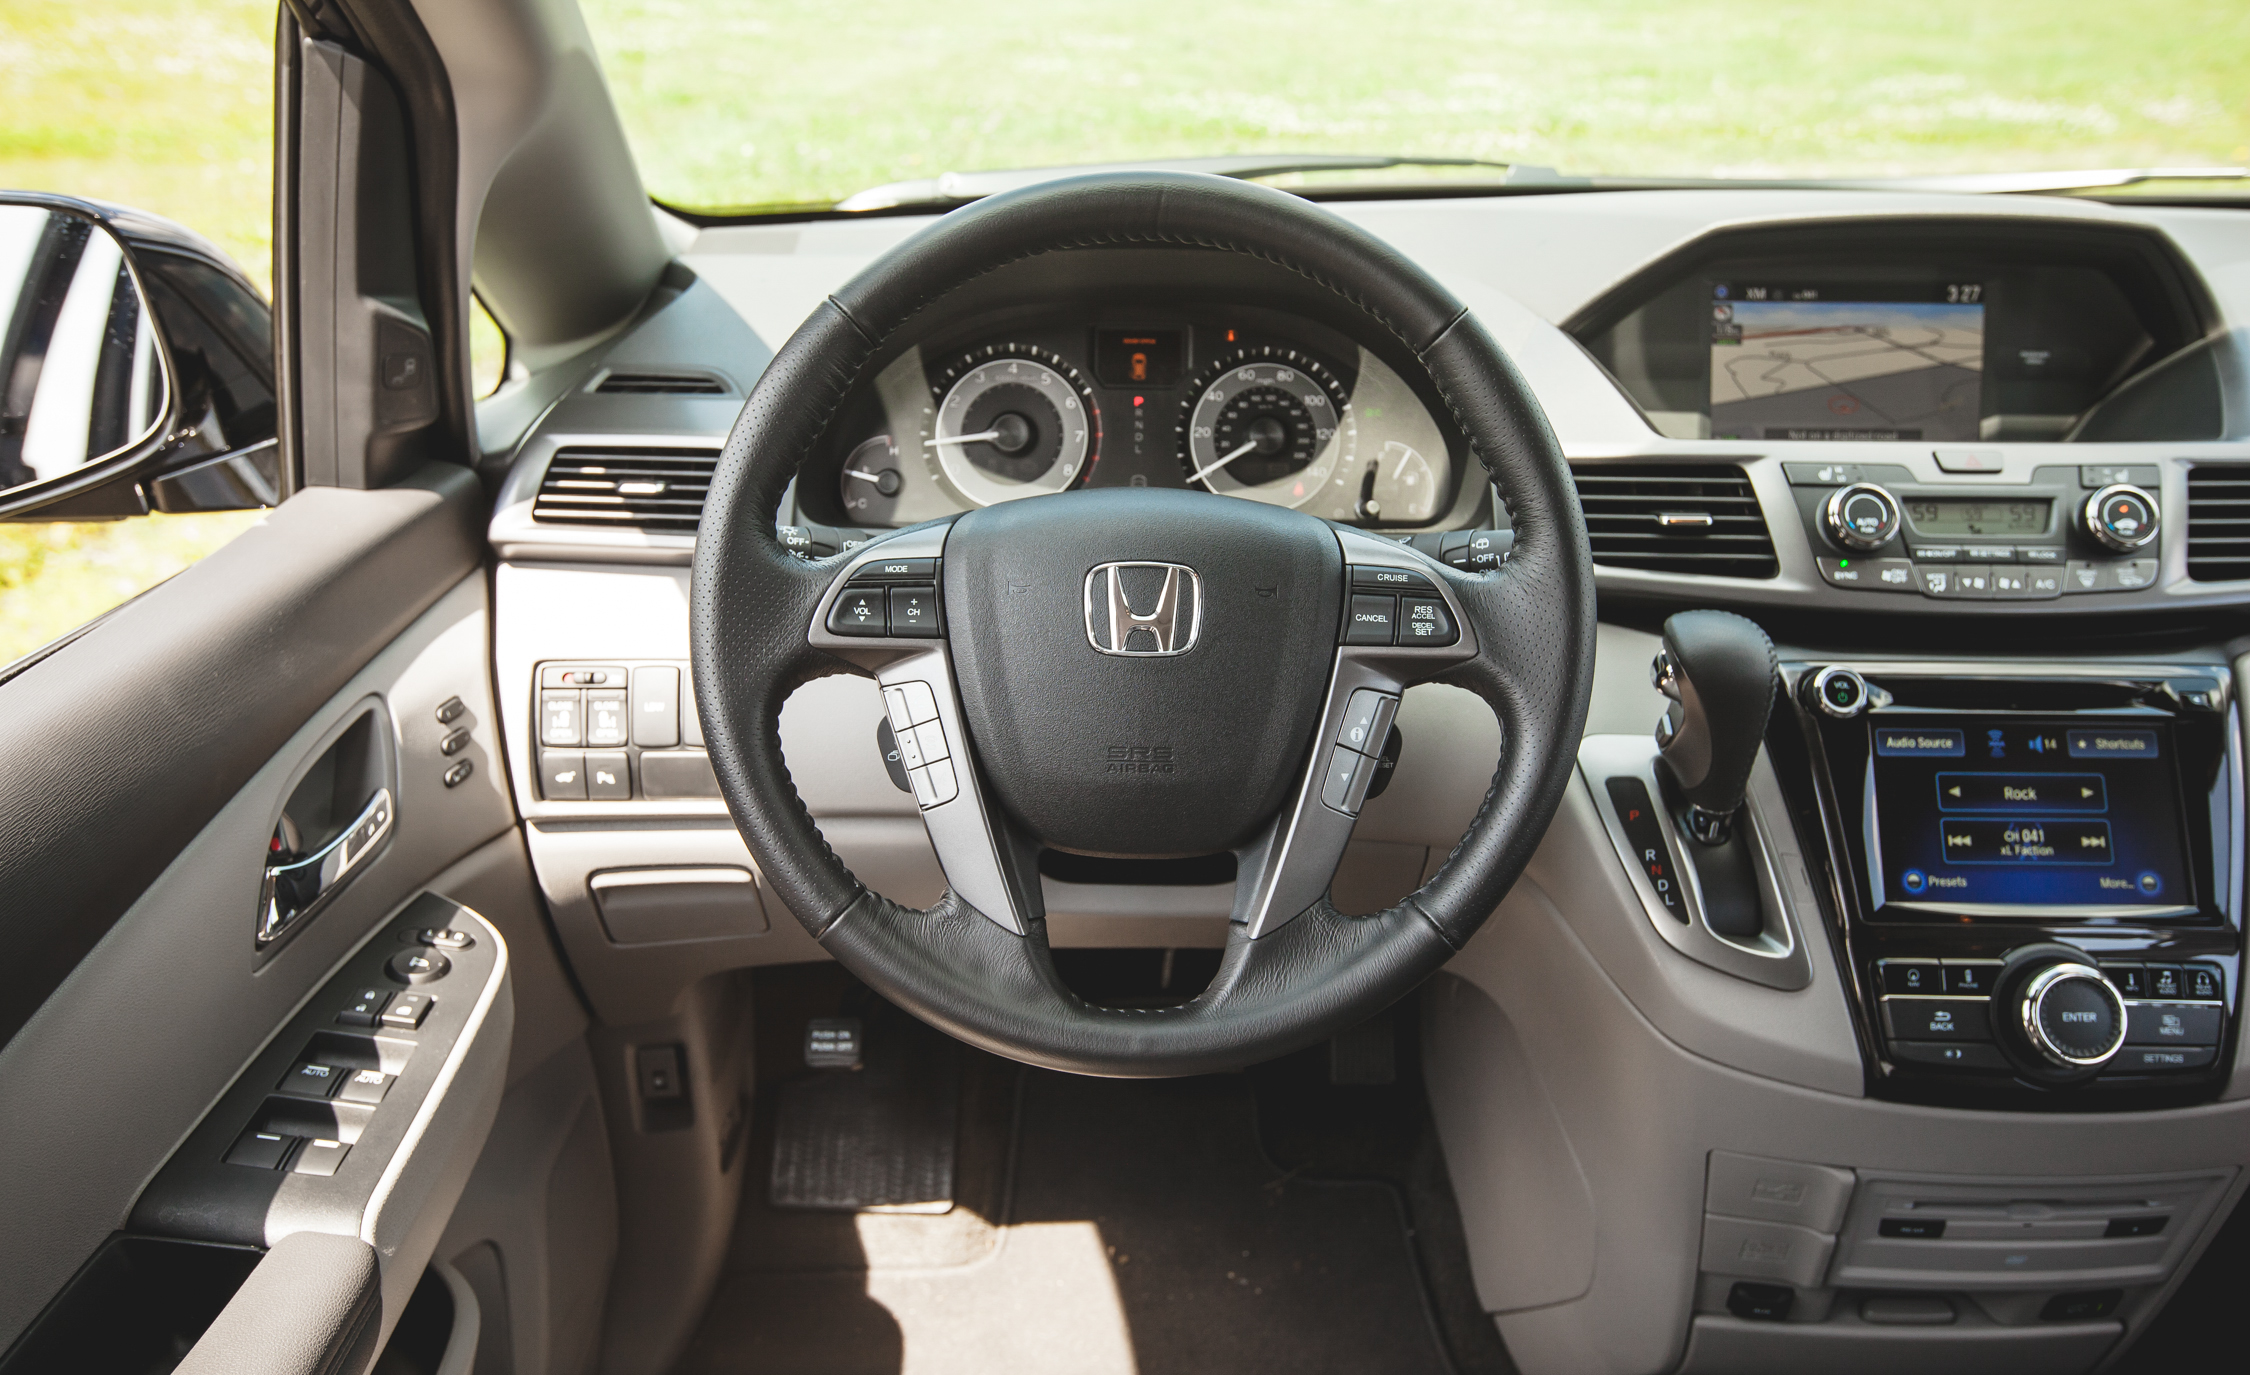 2014 Honda Odyssey Touring Elite Interior (Photo 18 of 19)